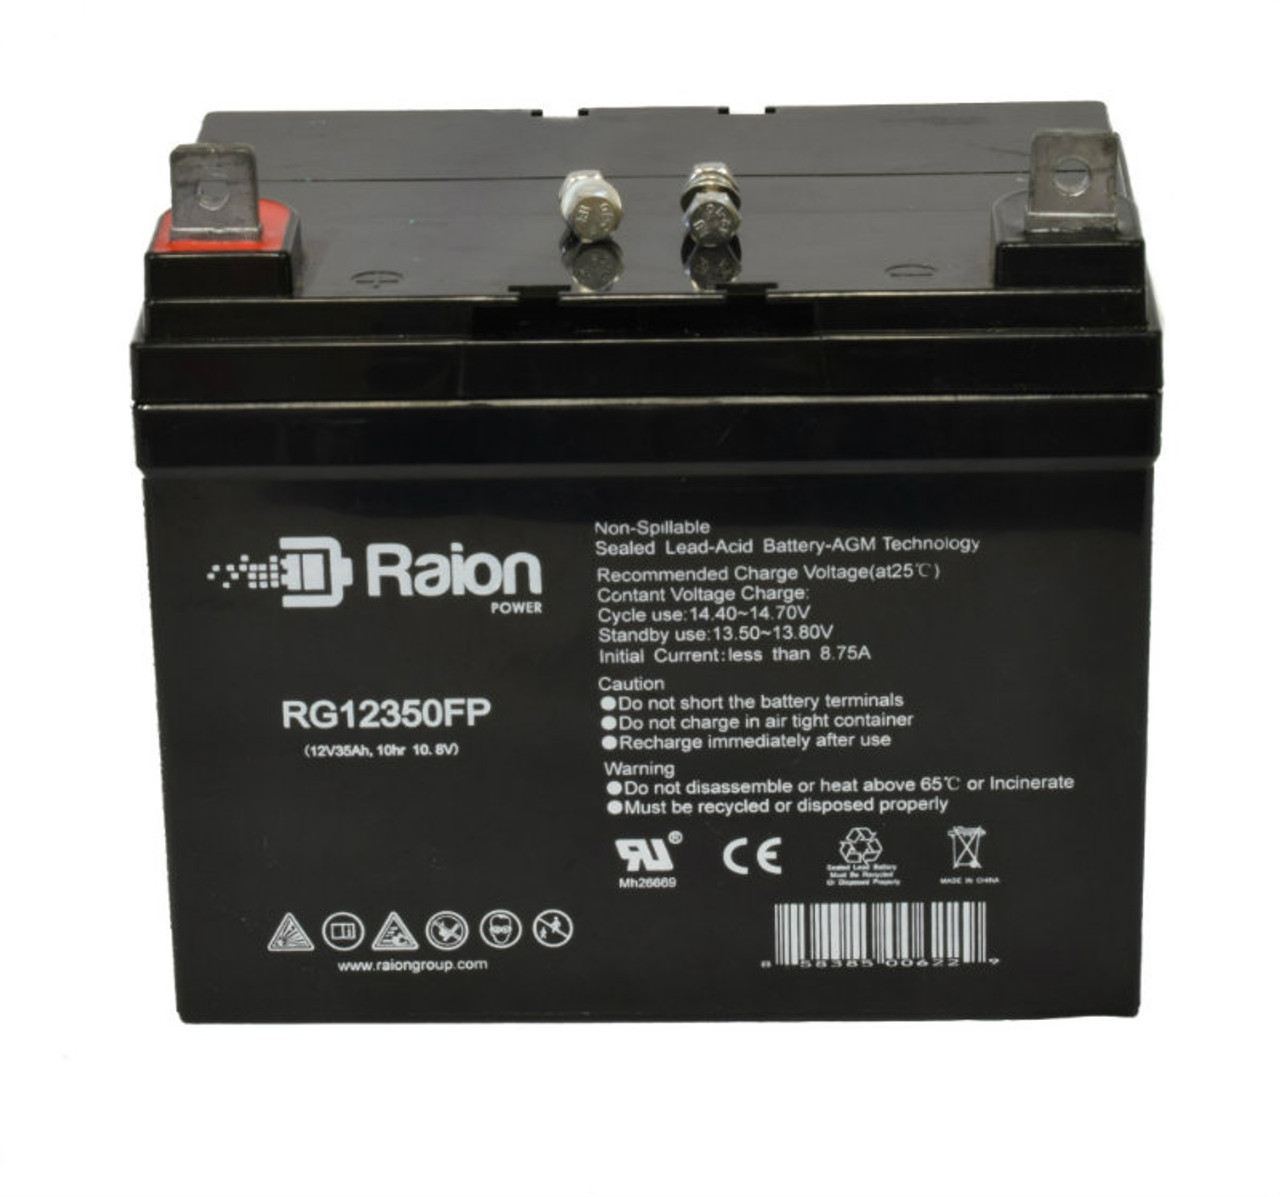 RG12350FP Sealed Lead Acid Battery Pack For Shoprider Sprinter 889-4 Mobility Scooter